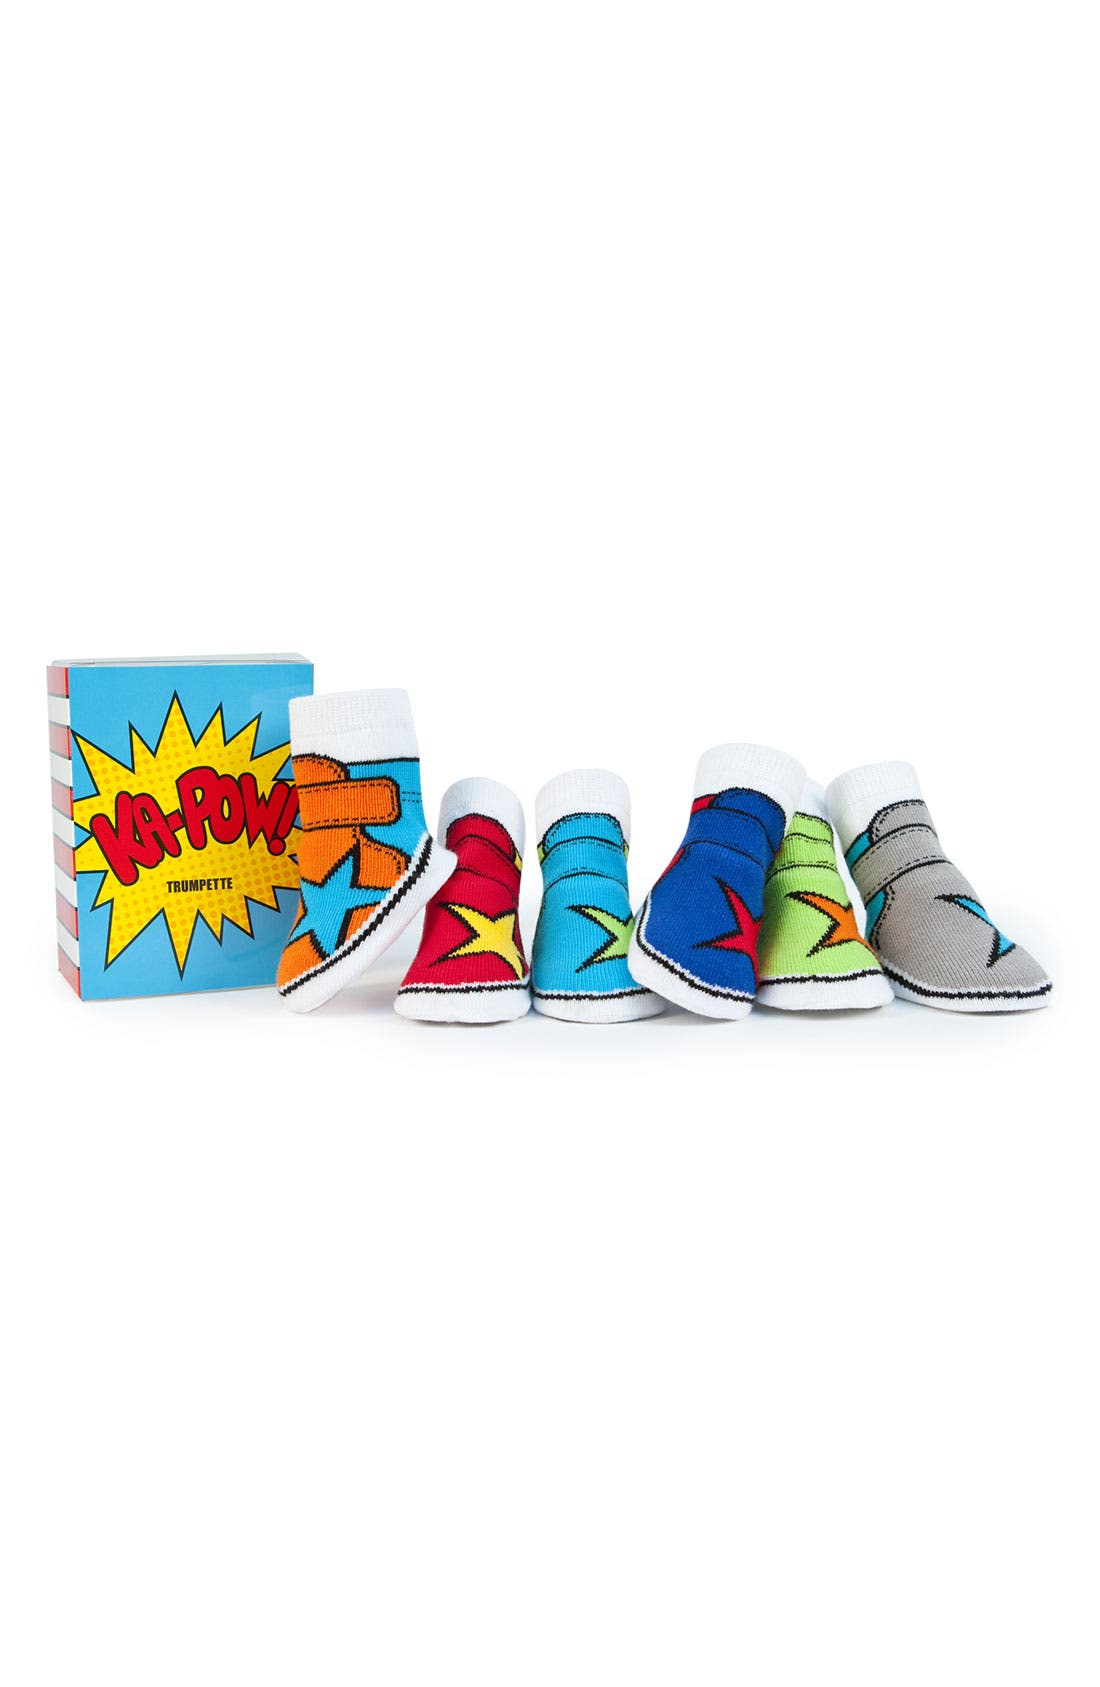 Alternate Image 1 Selected - Trumpette 'Ka Pow' Socks Gift Set (Baby Boys)